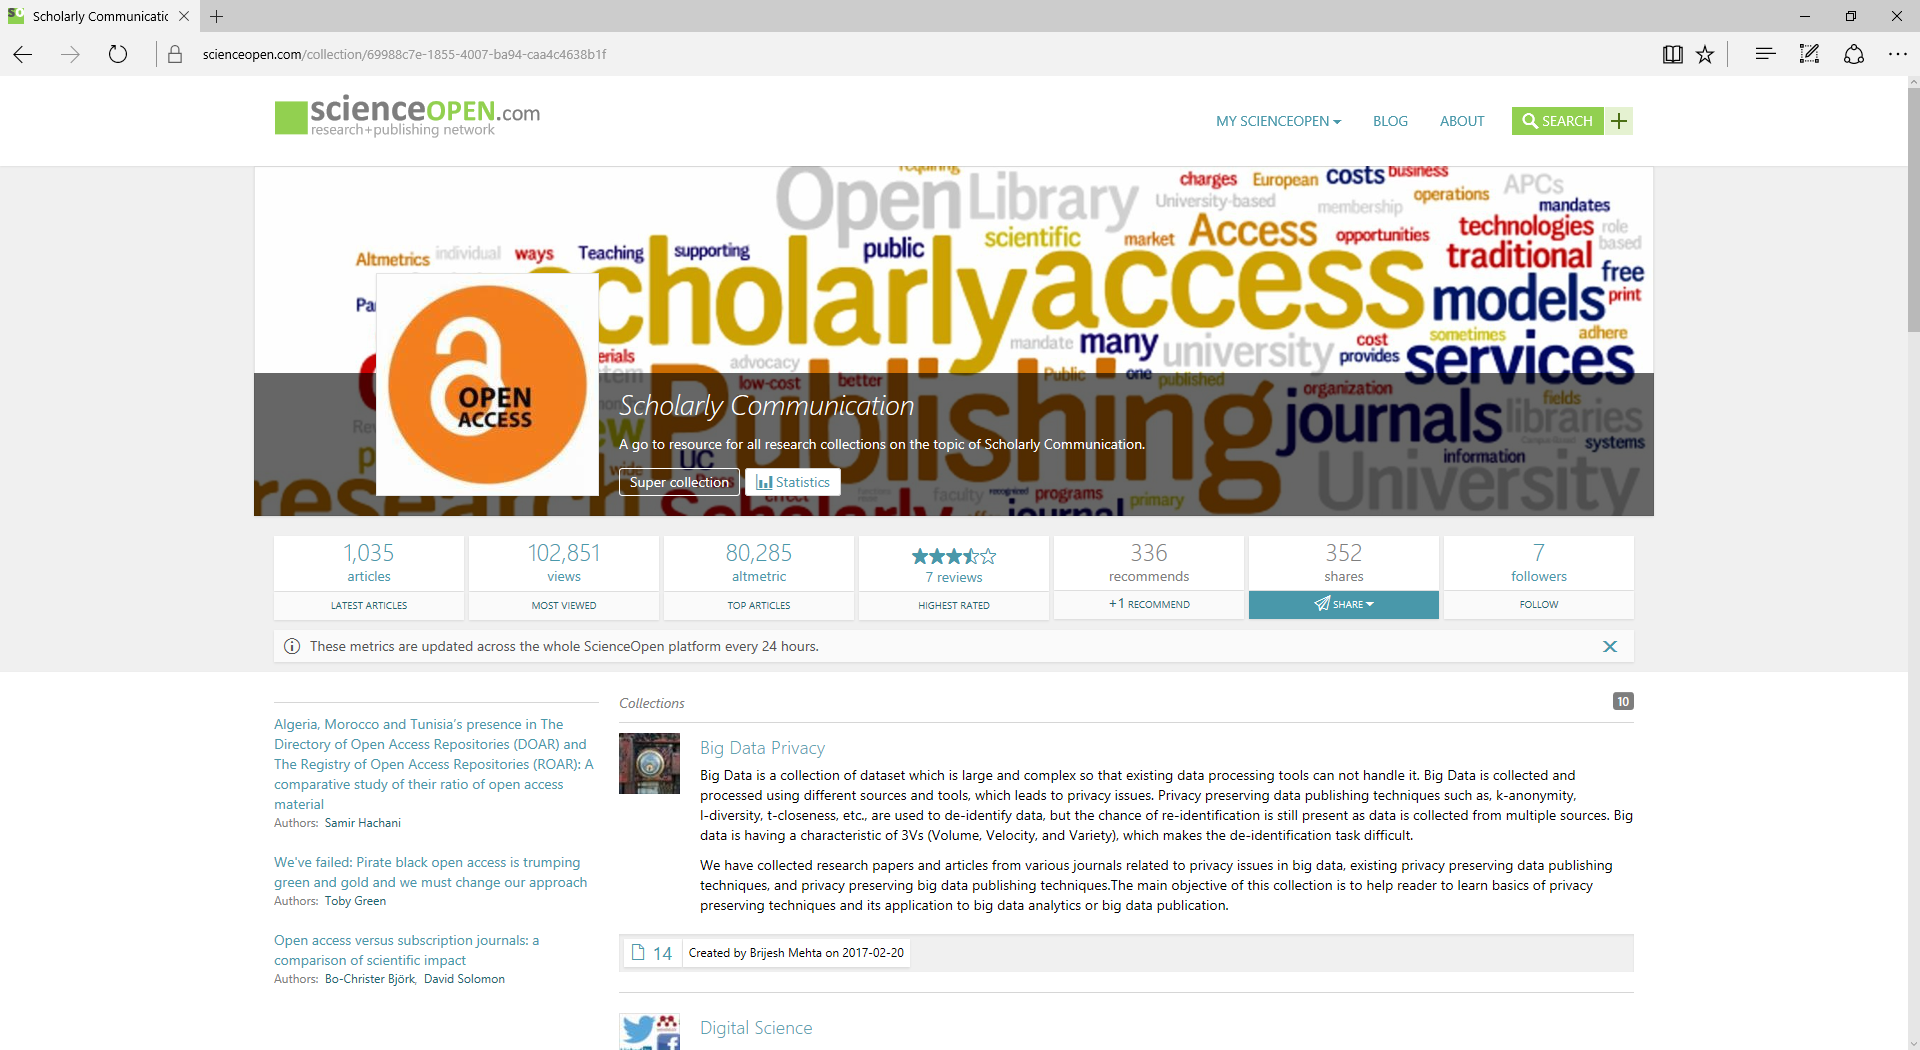 Scholarly communication super collection on ScienceOpen